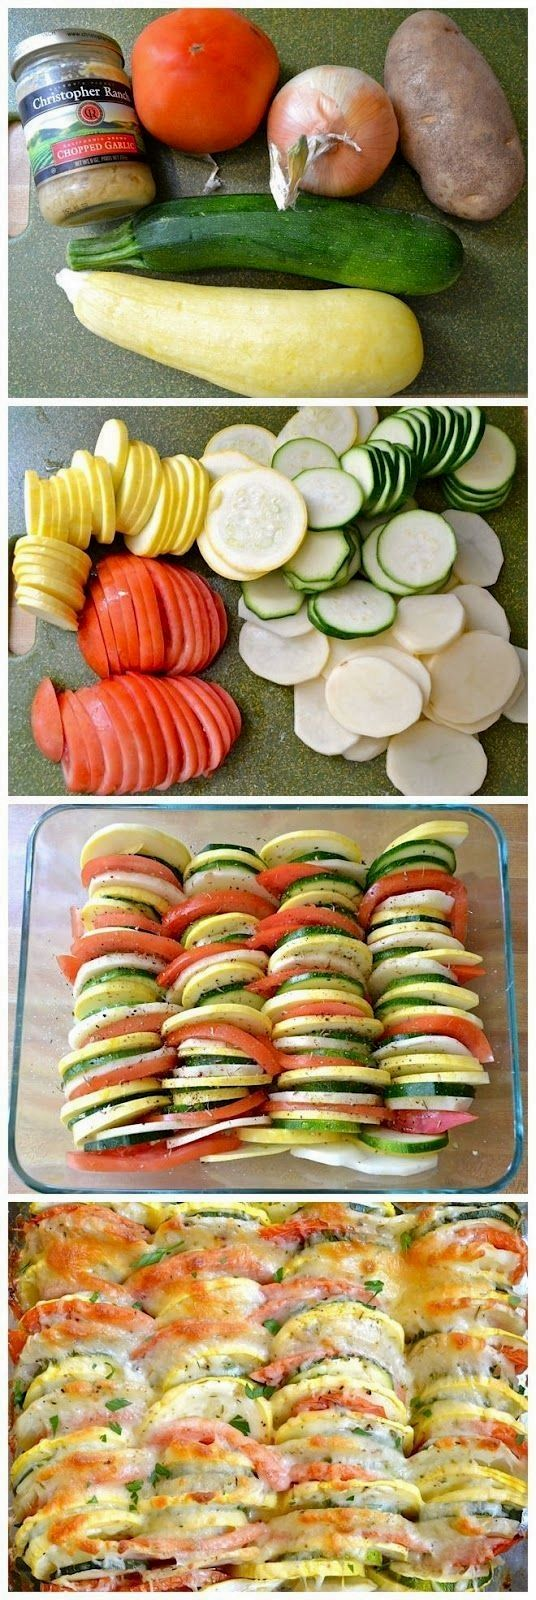 potatoes, onions, squash, zuchinni, tomatos...sliced, topped with seasoning and parmesian cheese